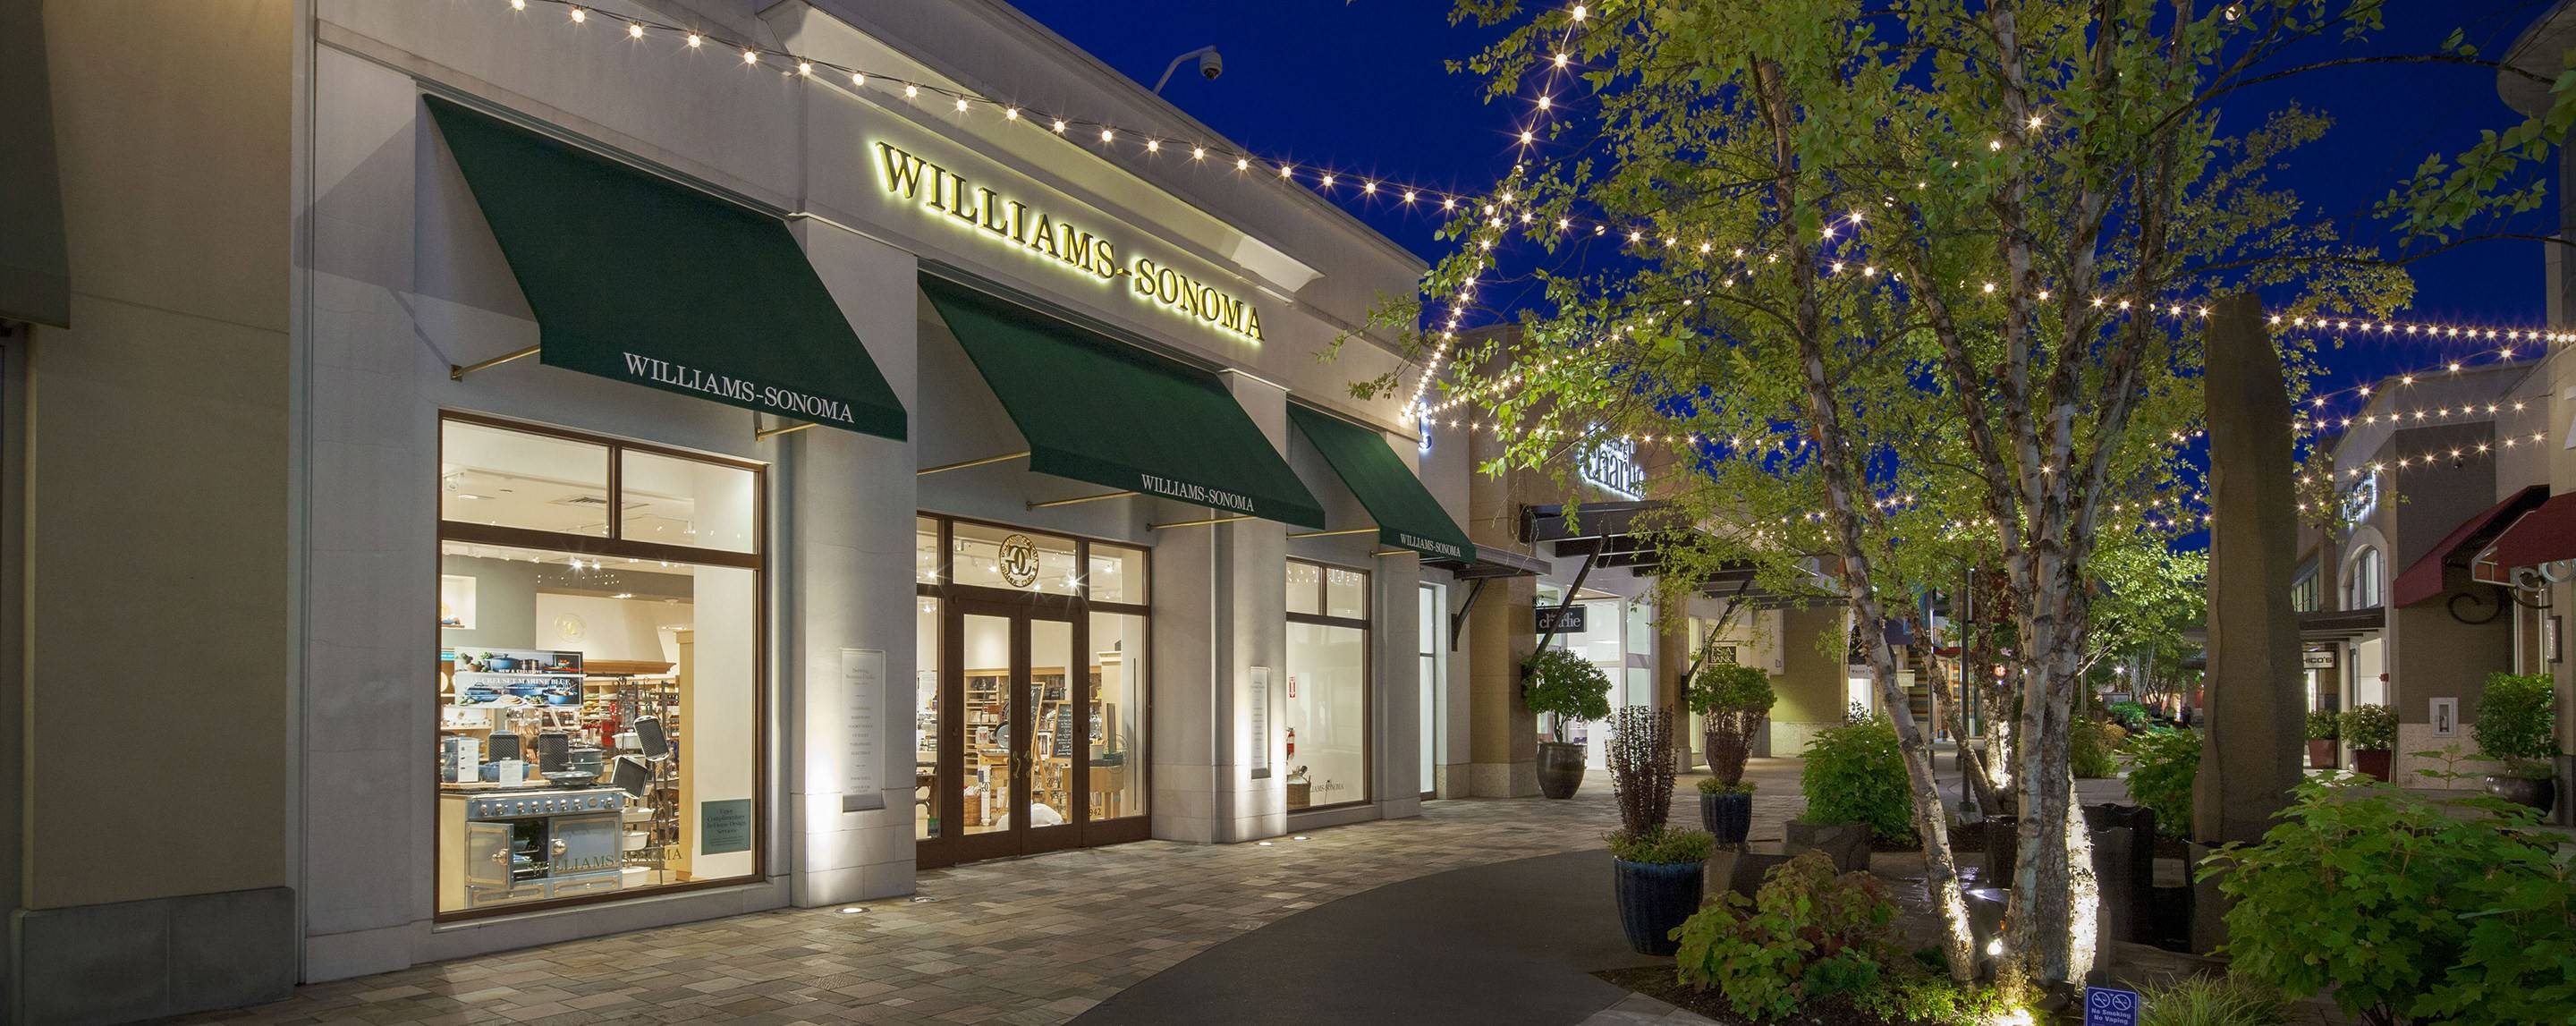 There is a tree and hanging lights outside of a Williams Sonoma store.